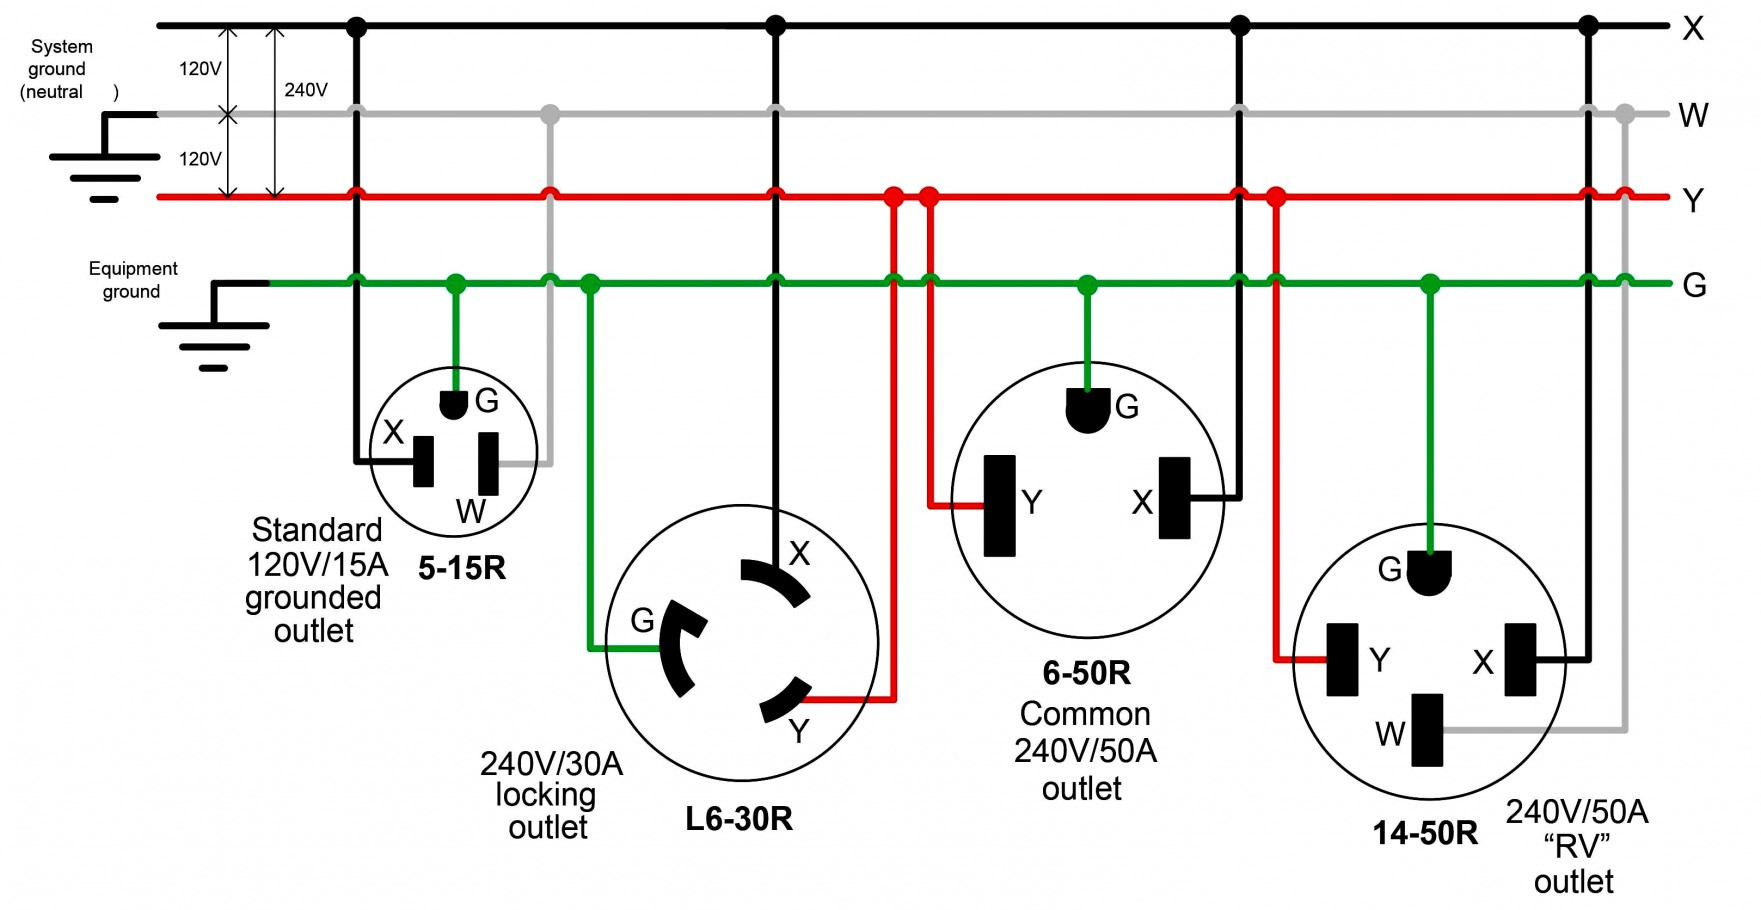 a 4 prong stove schematic wiring diagram today wiring diagram 7 pin to 4 pin trailer wiring diagram 7 Pin To 4 Pin Trailer Wiring Diagram